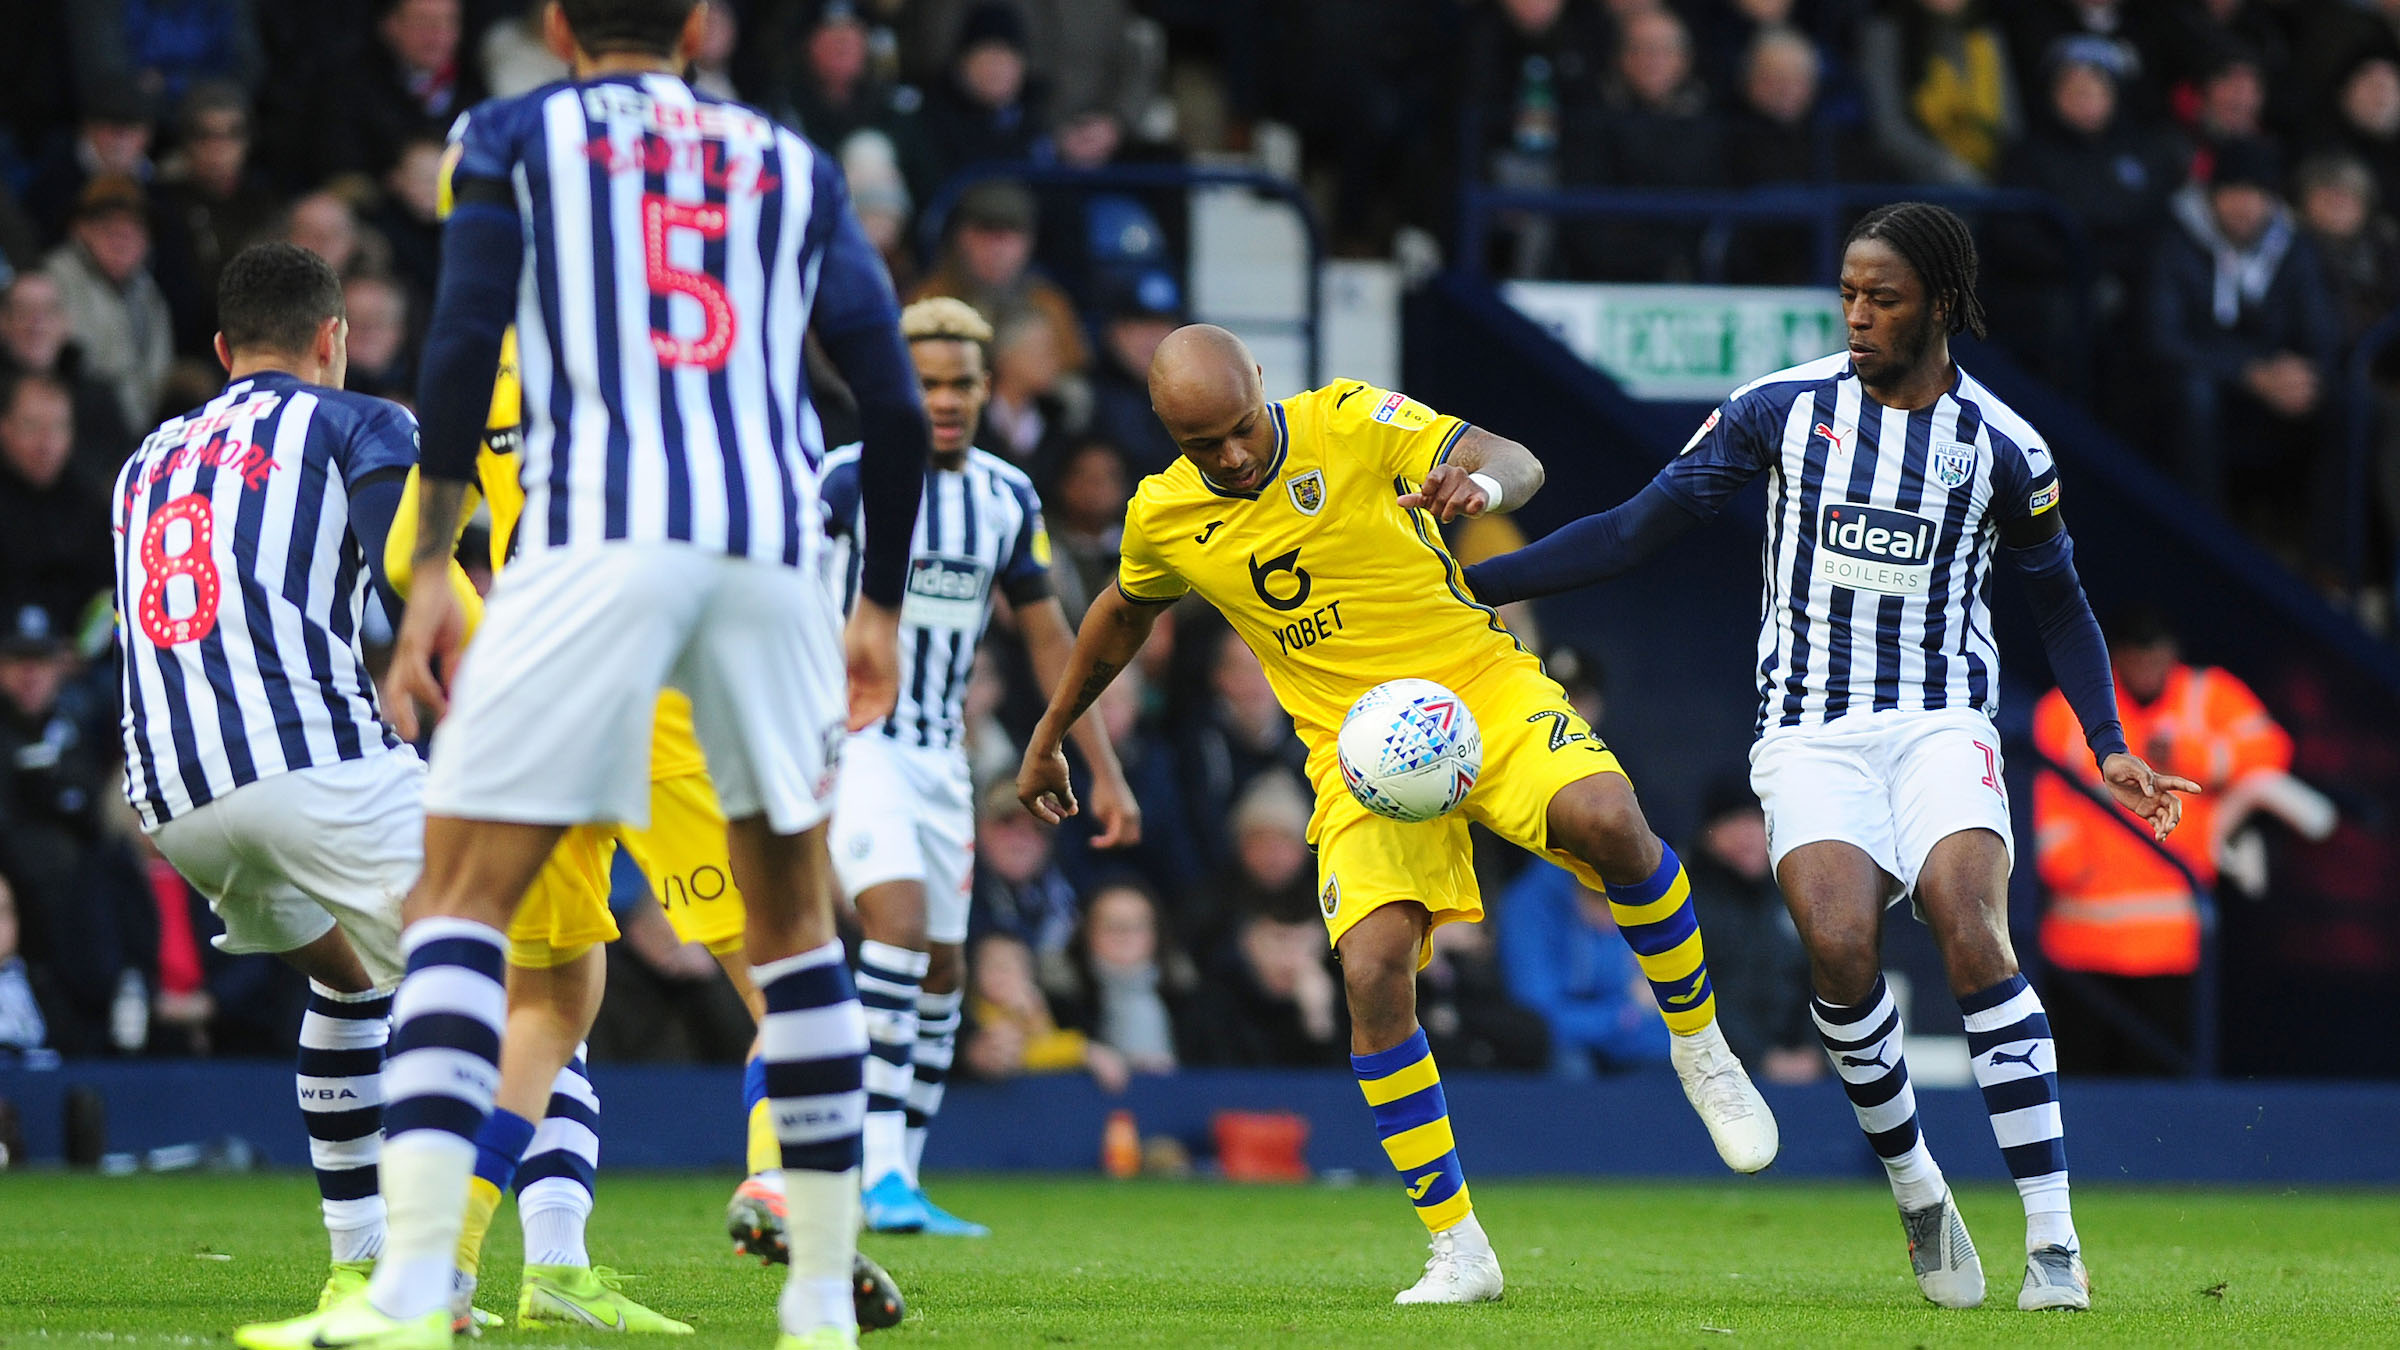 Swansea Vs West Brom Results